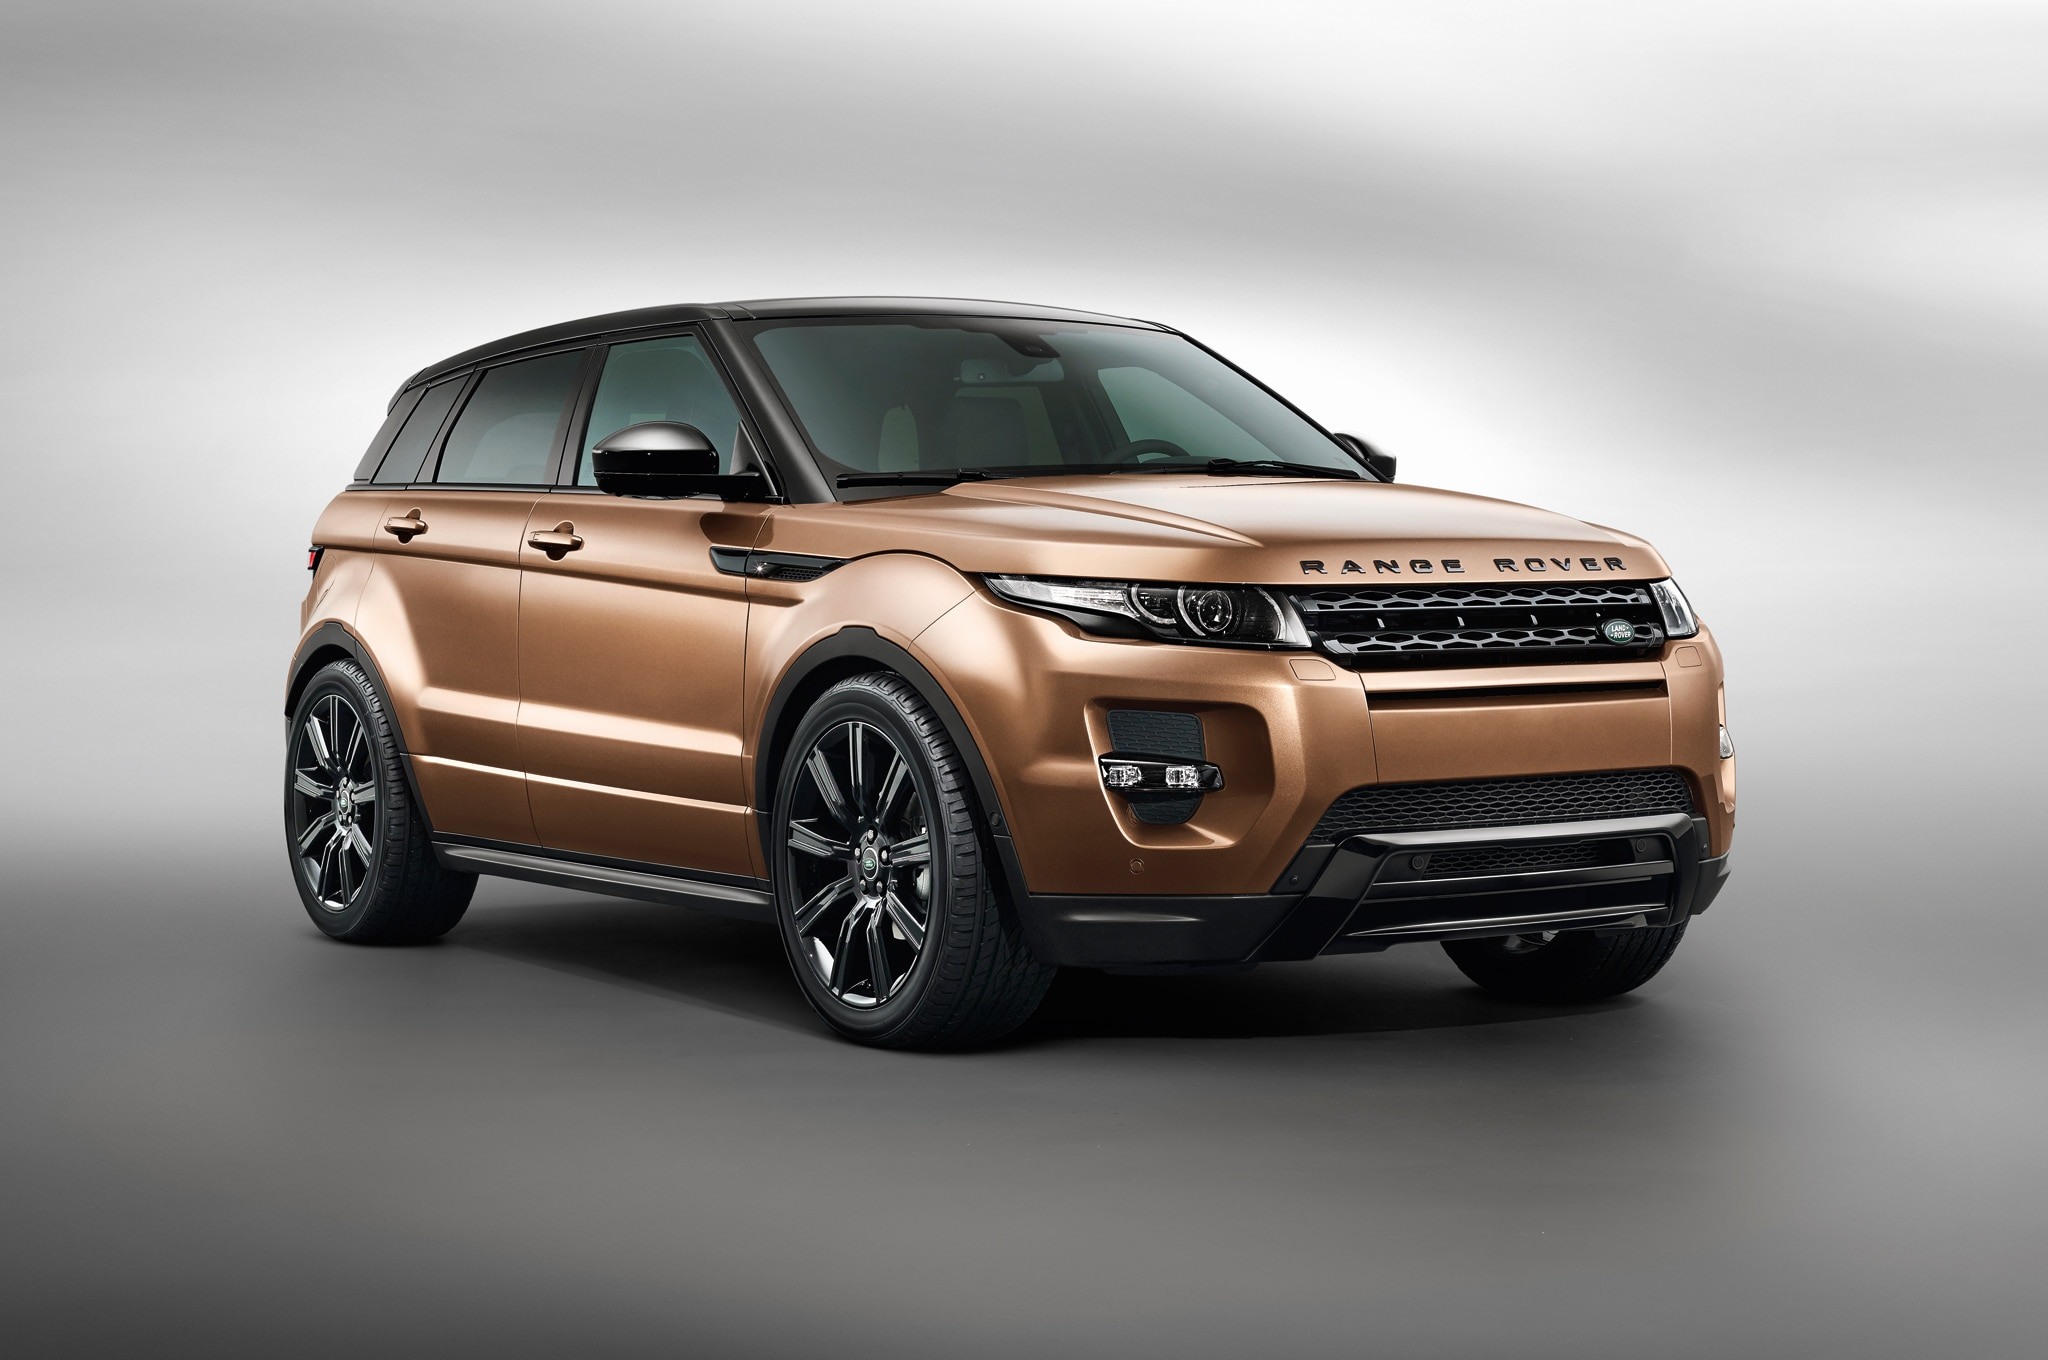 2014 Land Rover LR2 Range Rover Evoque Priced